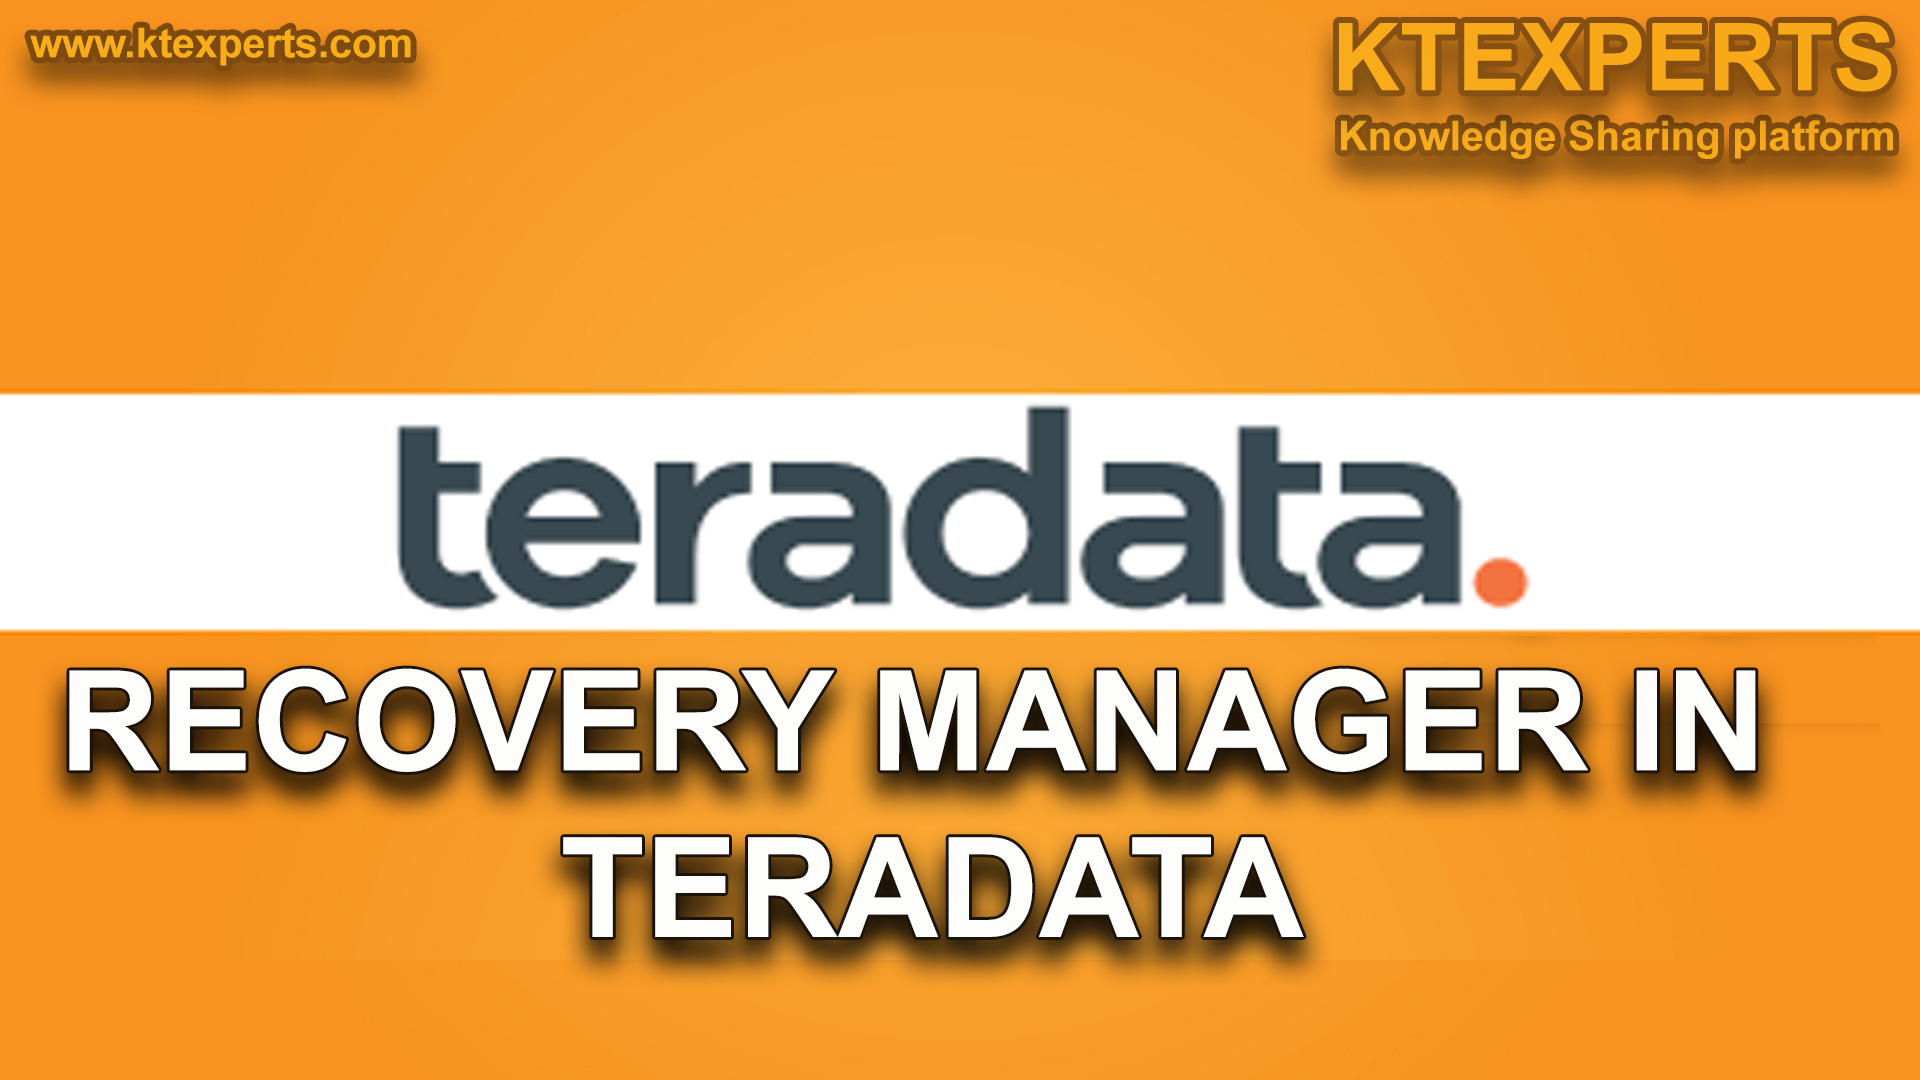 RECOVERY MANAGER IN TERADATA